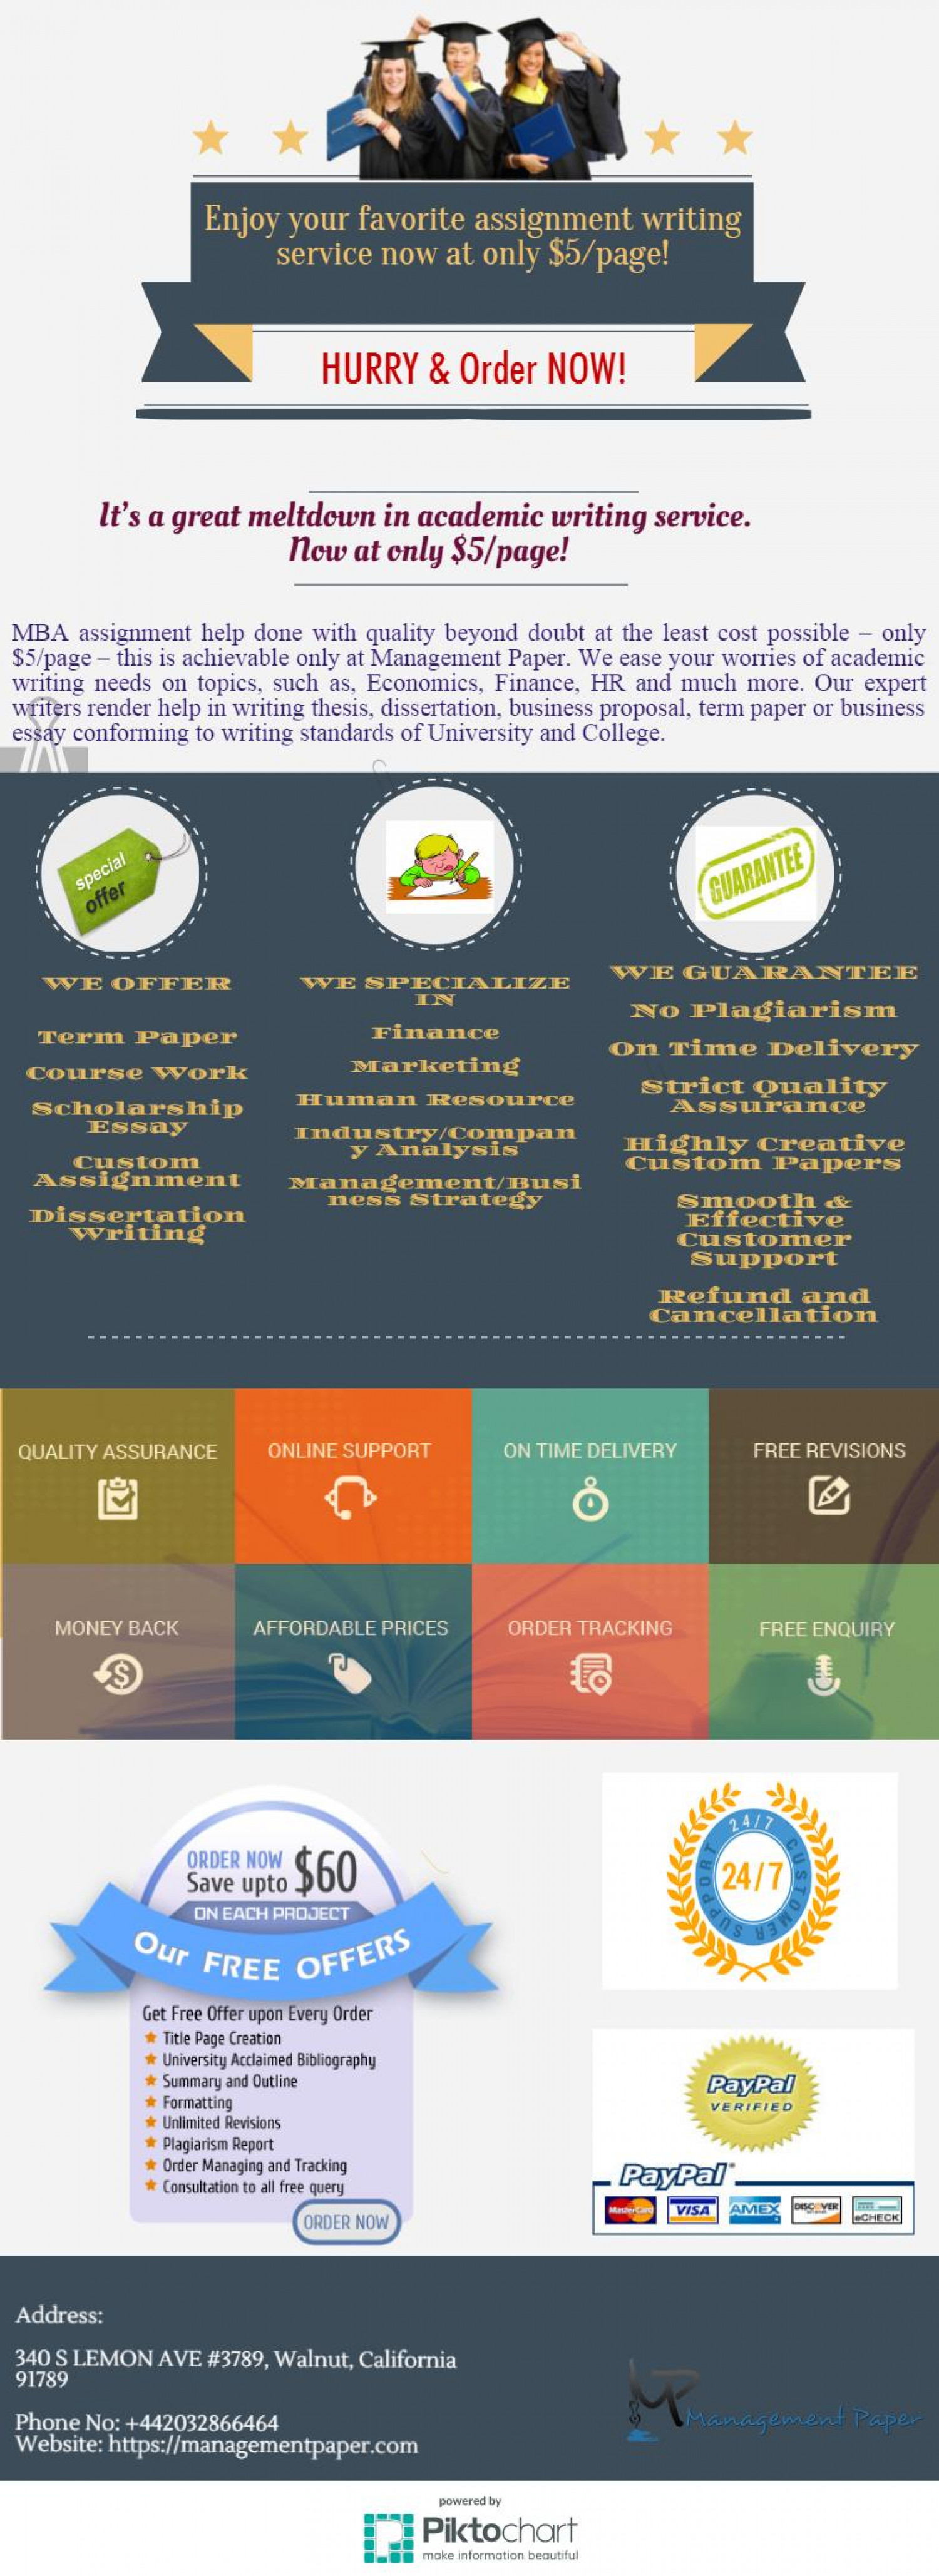 enjoy the advantages of academic writing service only at 5 page enjoy the advantages of academic writing service only at 5 page infographic